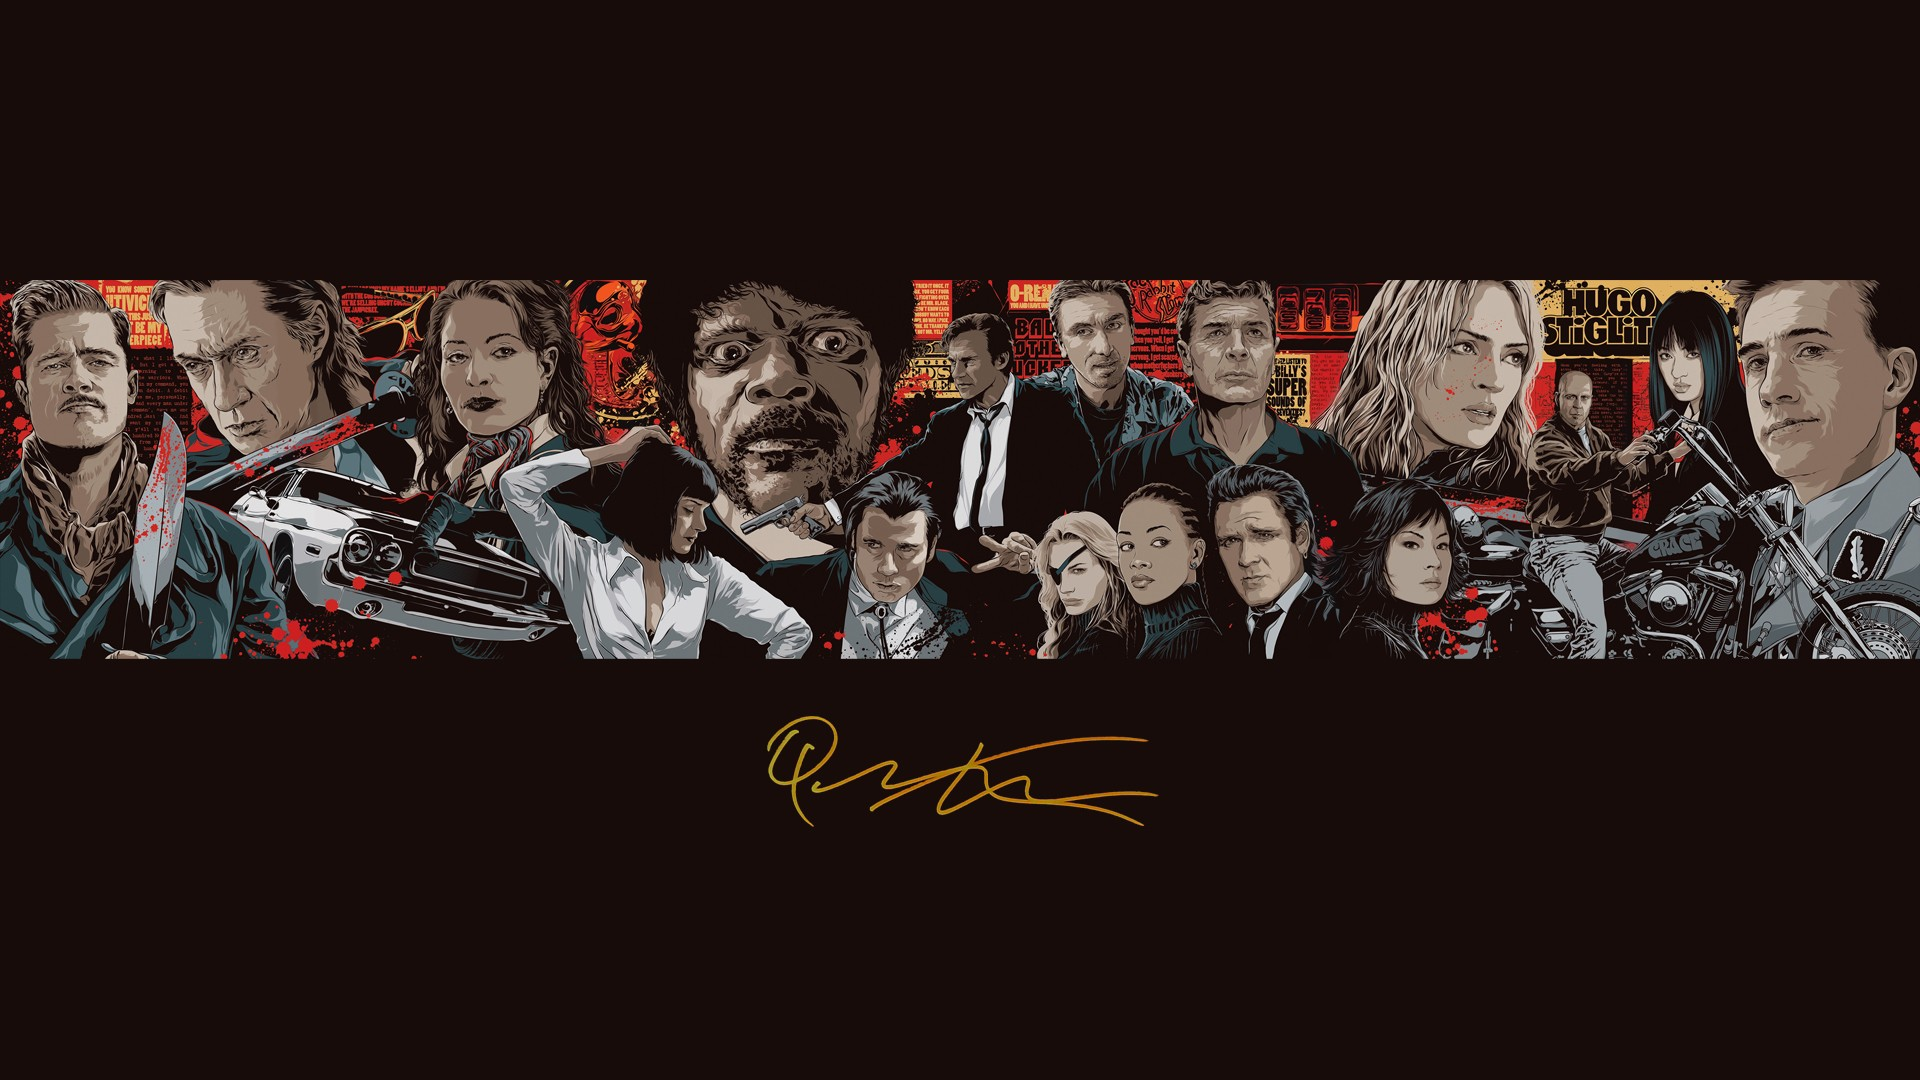 movies_quentin_tarantino_pulp_fiction_kill_bill_reservoir_dogs_92864